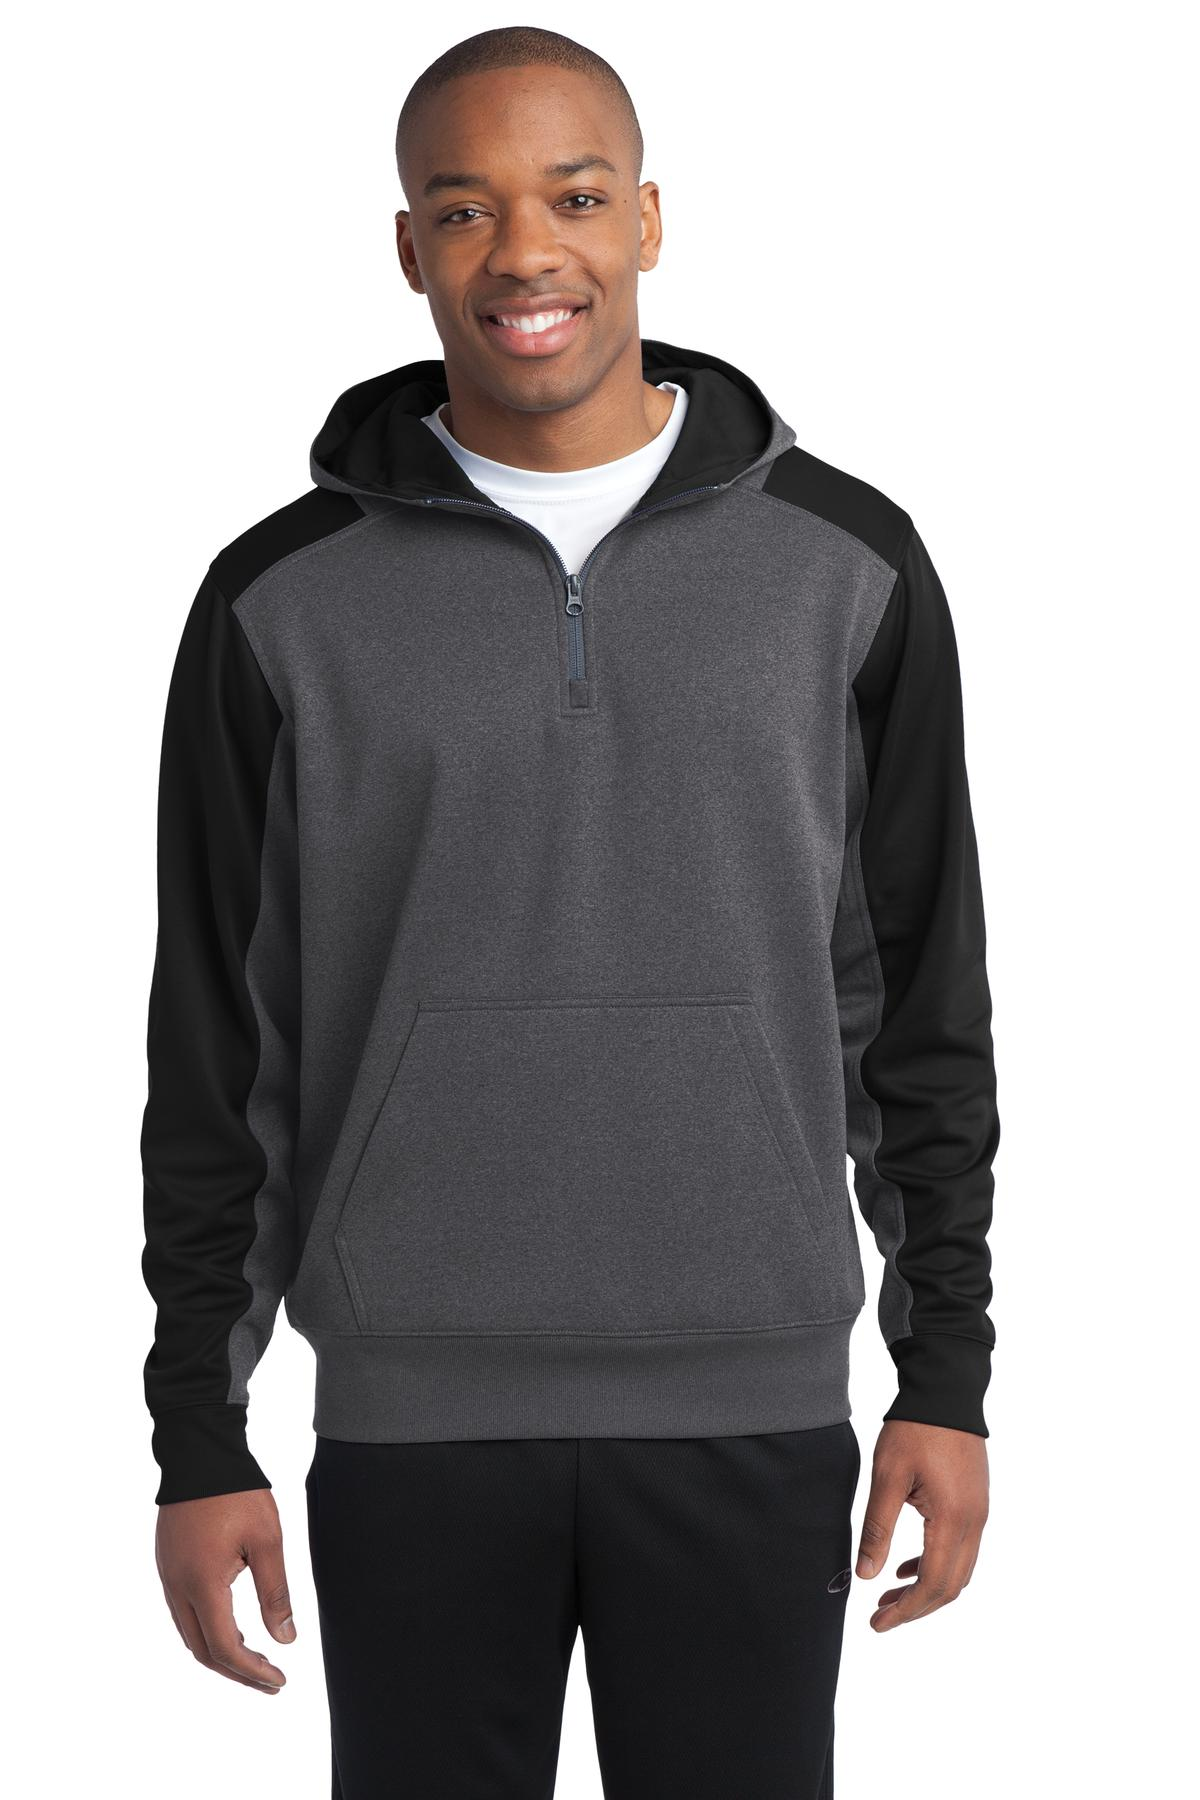 Sport-Tek ®   Tech Fleece Colorblock 1/4-Zip Hooded Sweatshirt. ST249 - Graphite Heather/ Black